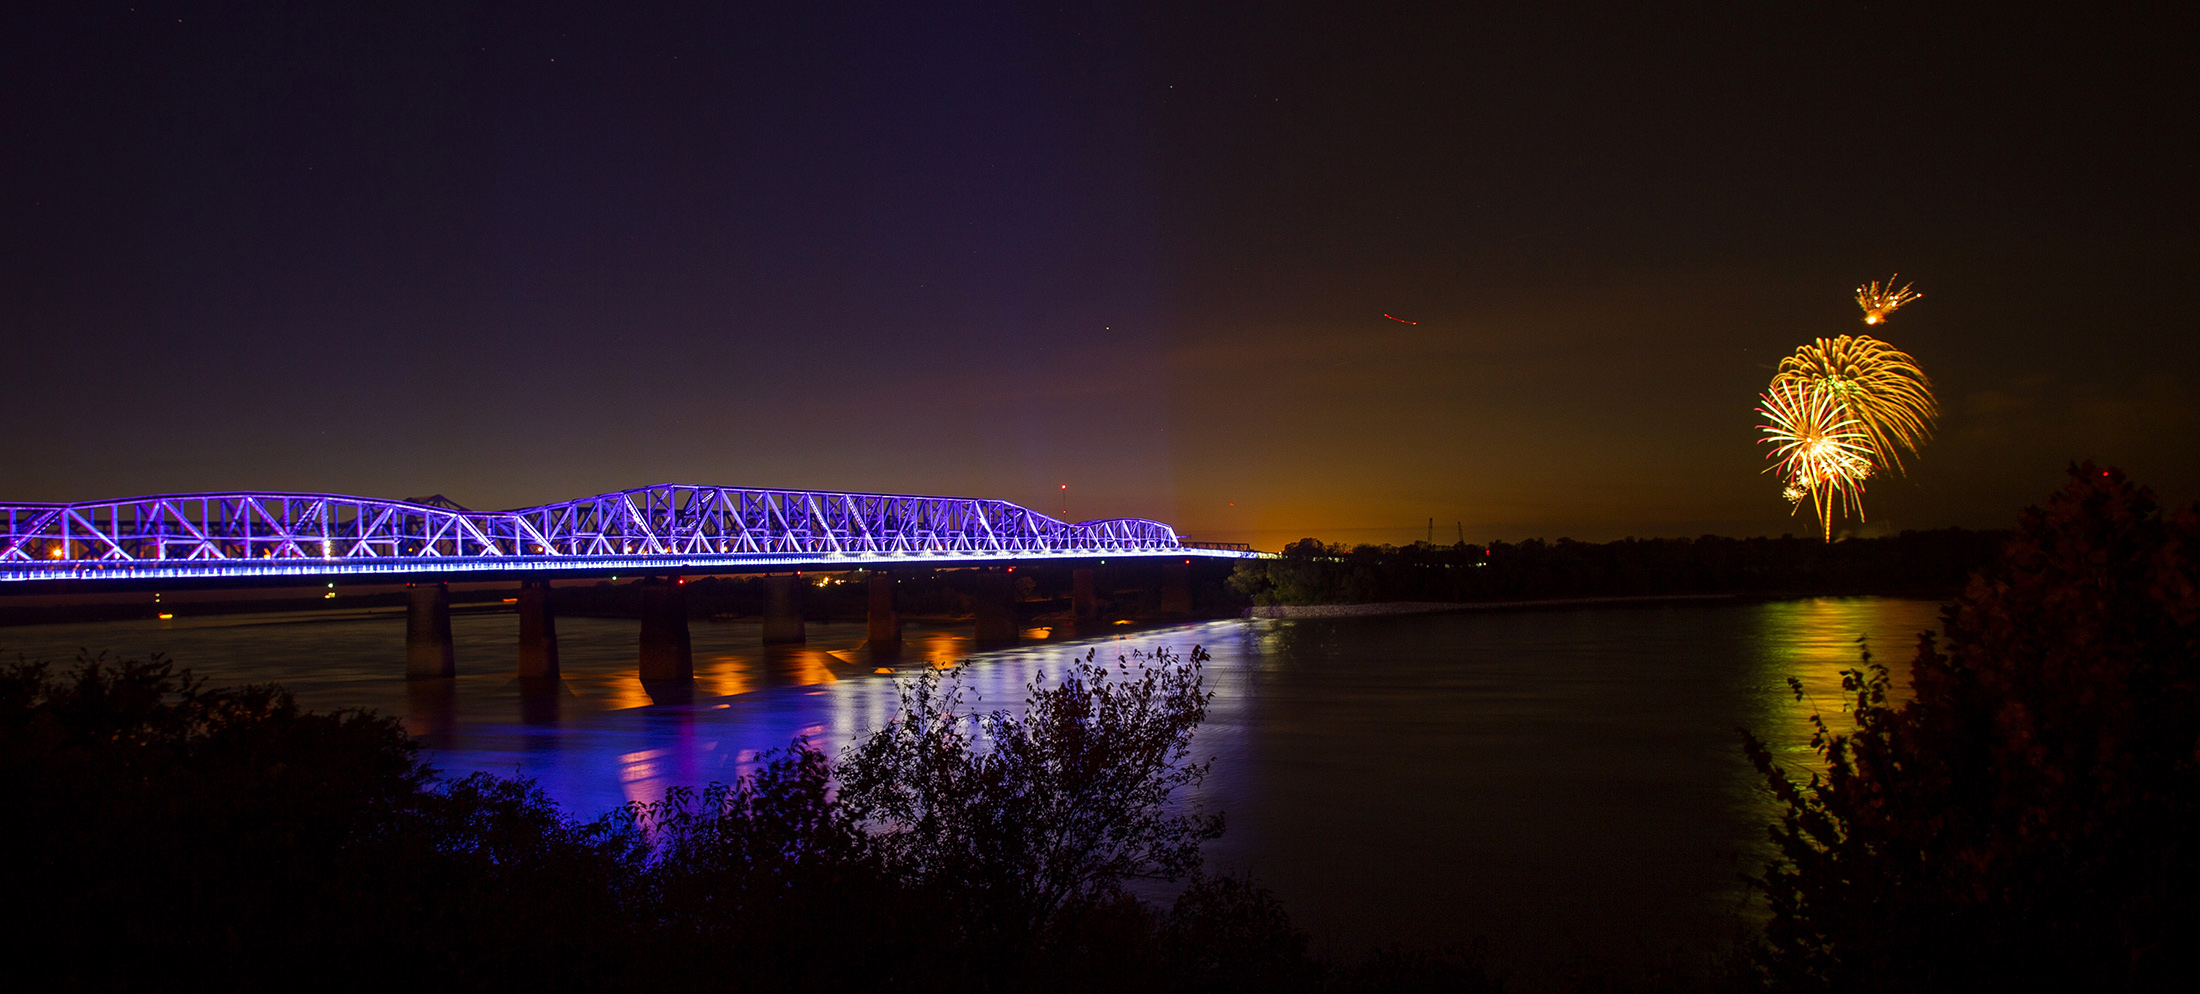 "memphis bridge lighting, inc - MBL is a privately-funded 501(c)(3) established in 2016 to oversee the development, design, installation, branding/communications, maintenance, and ongoing programming for LED light installations on the Harahan Bridge's Big River Crossing and Hernando De Soto Bridge, known locally as ""the M bridge."""